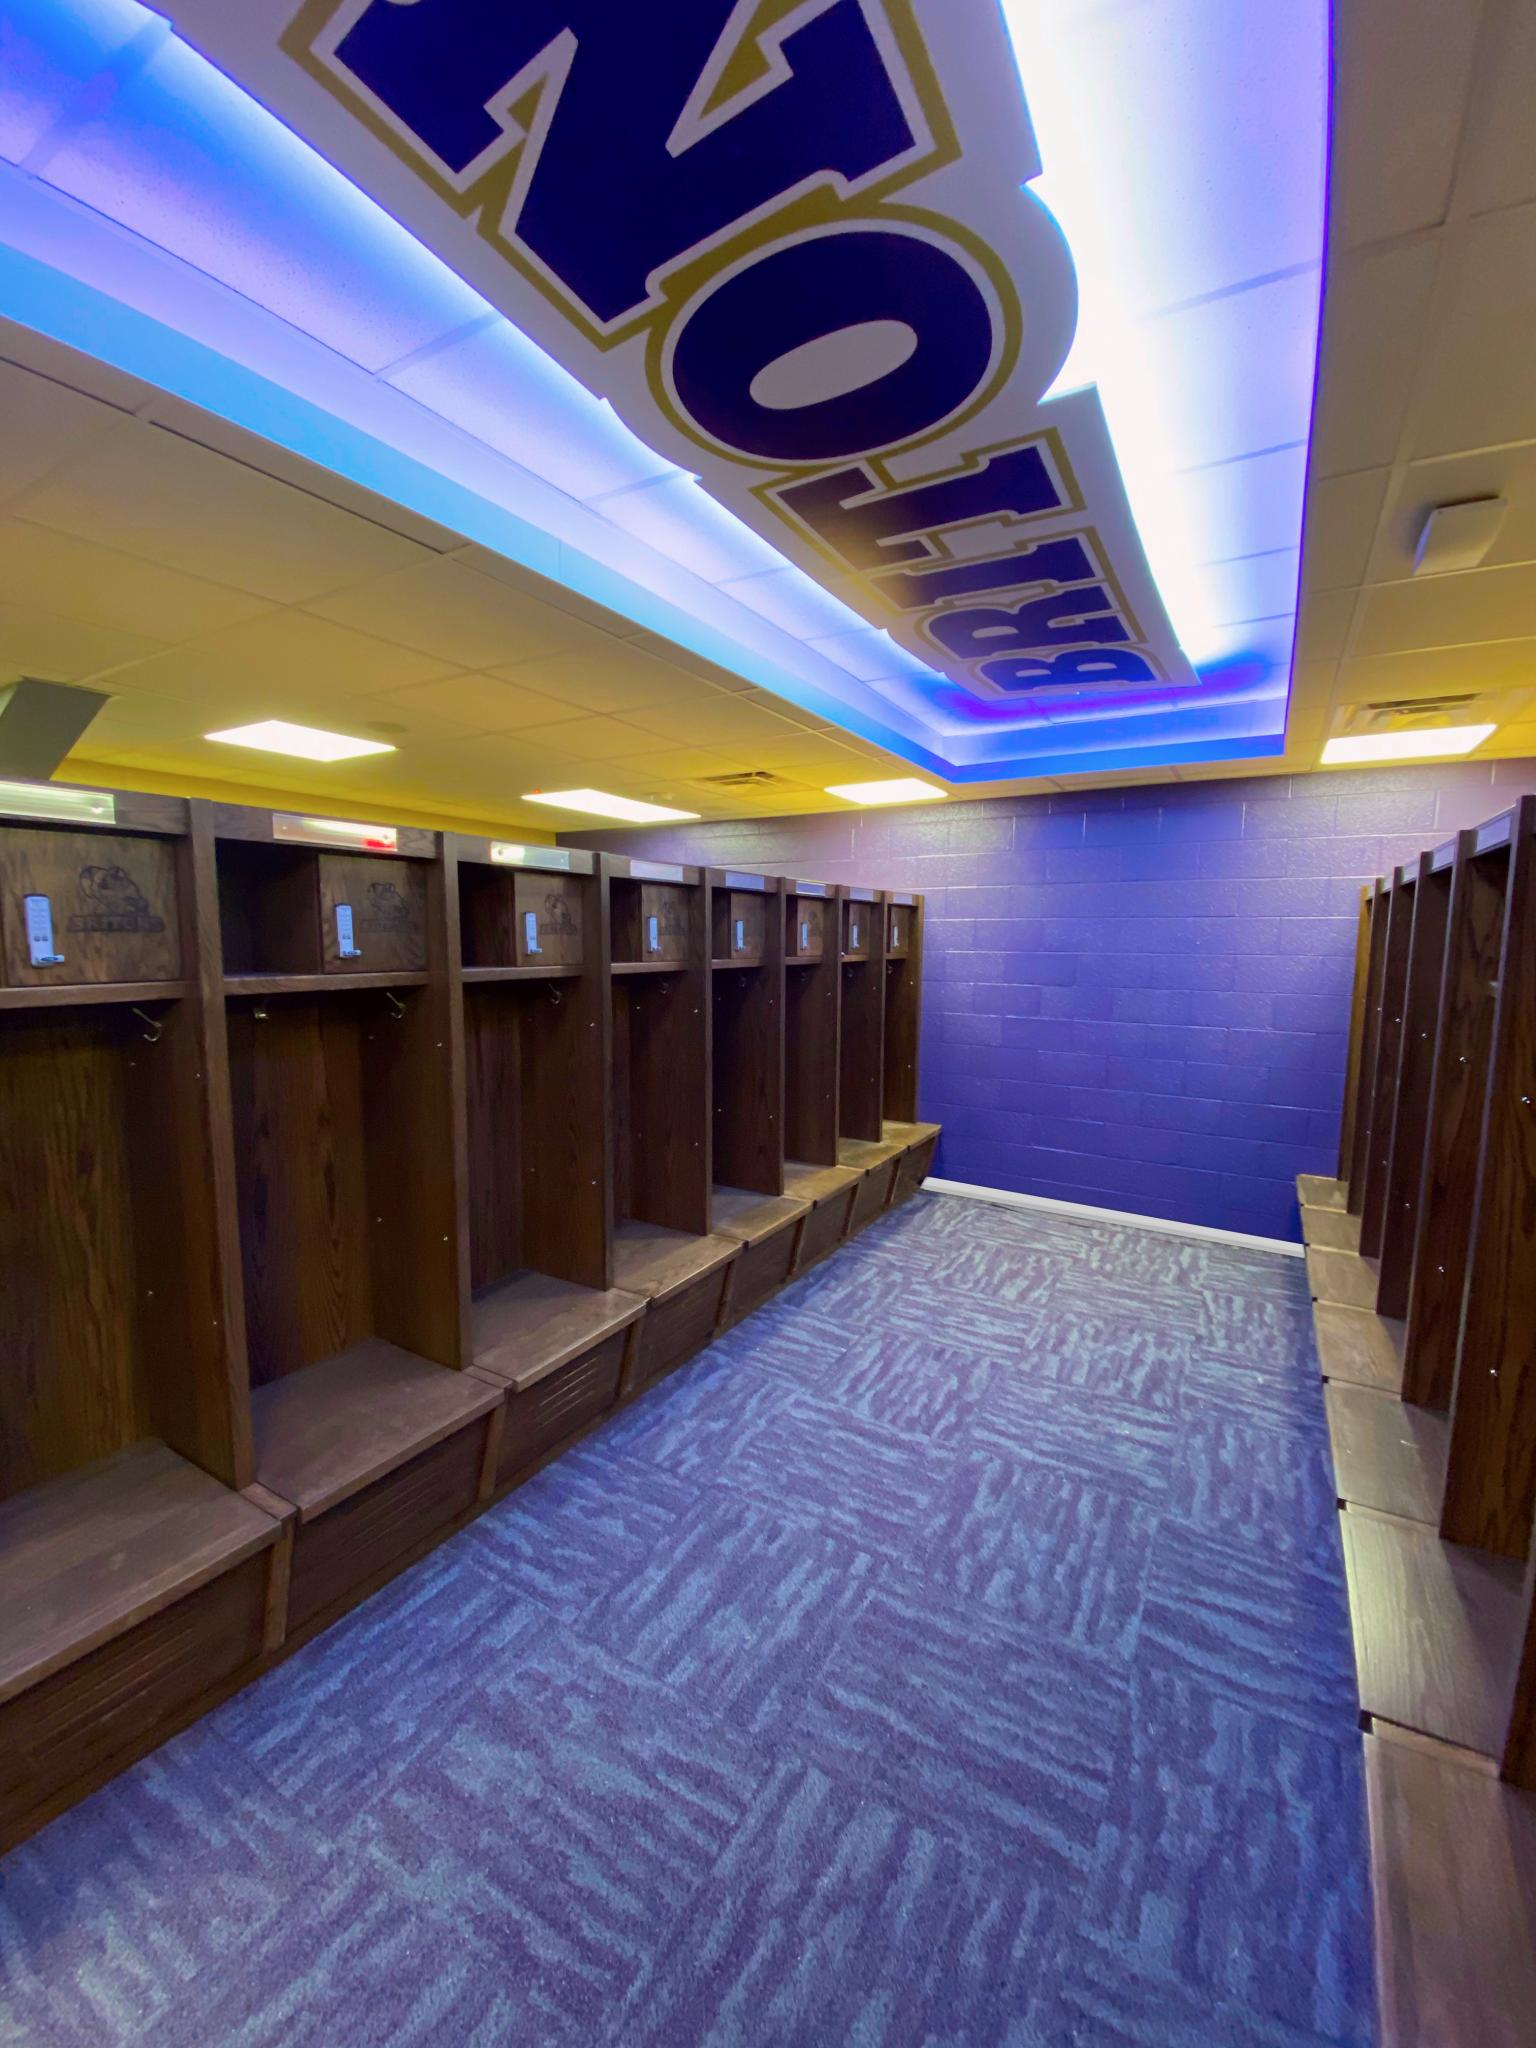 image of purple carpet and set of wooden lockers